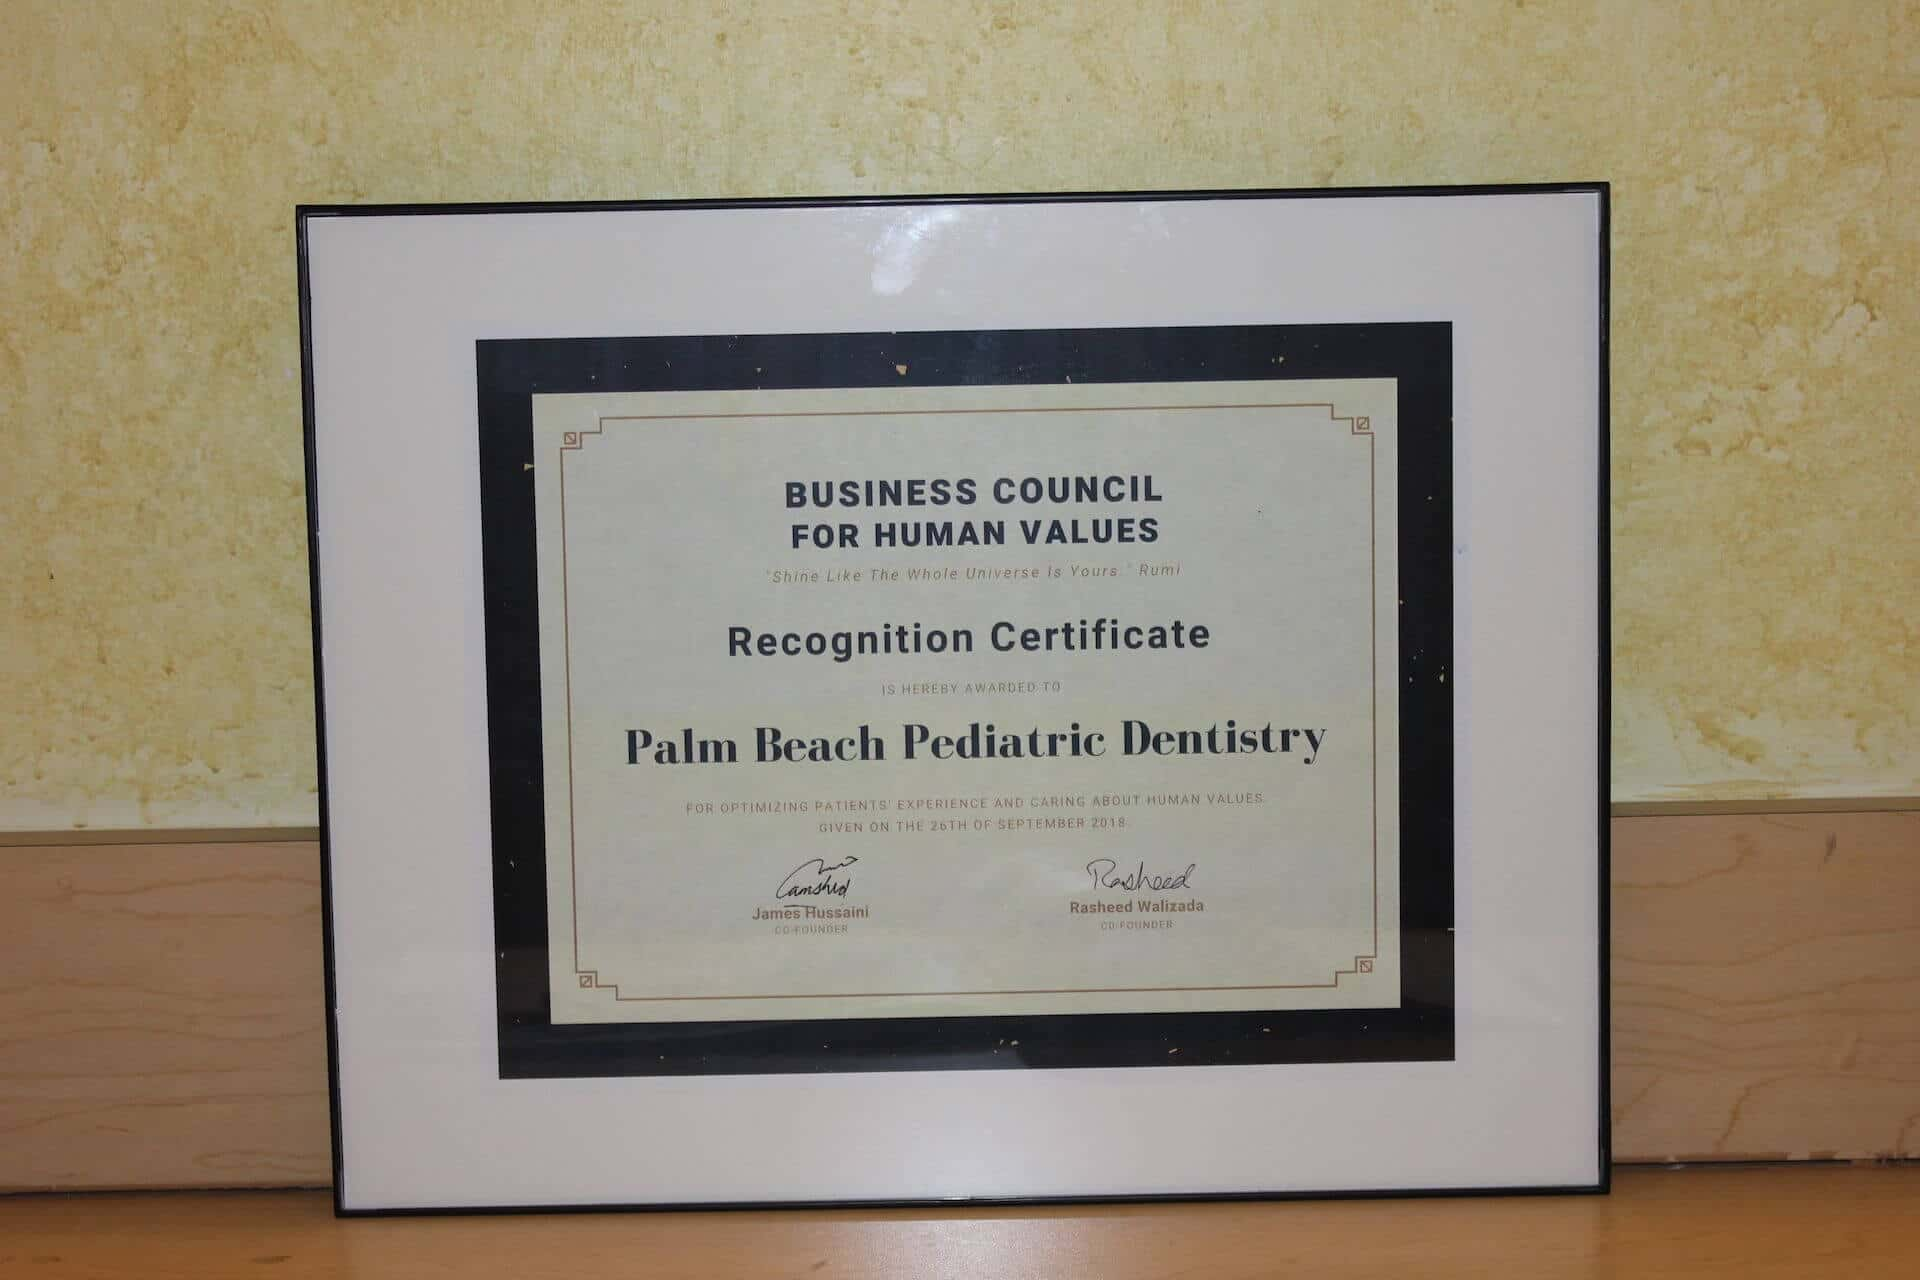 Business Council for Human Values Award